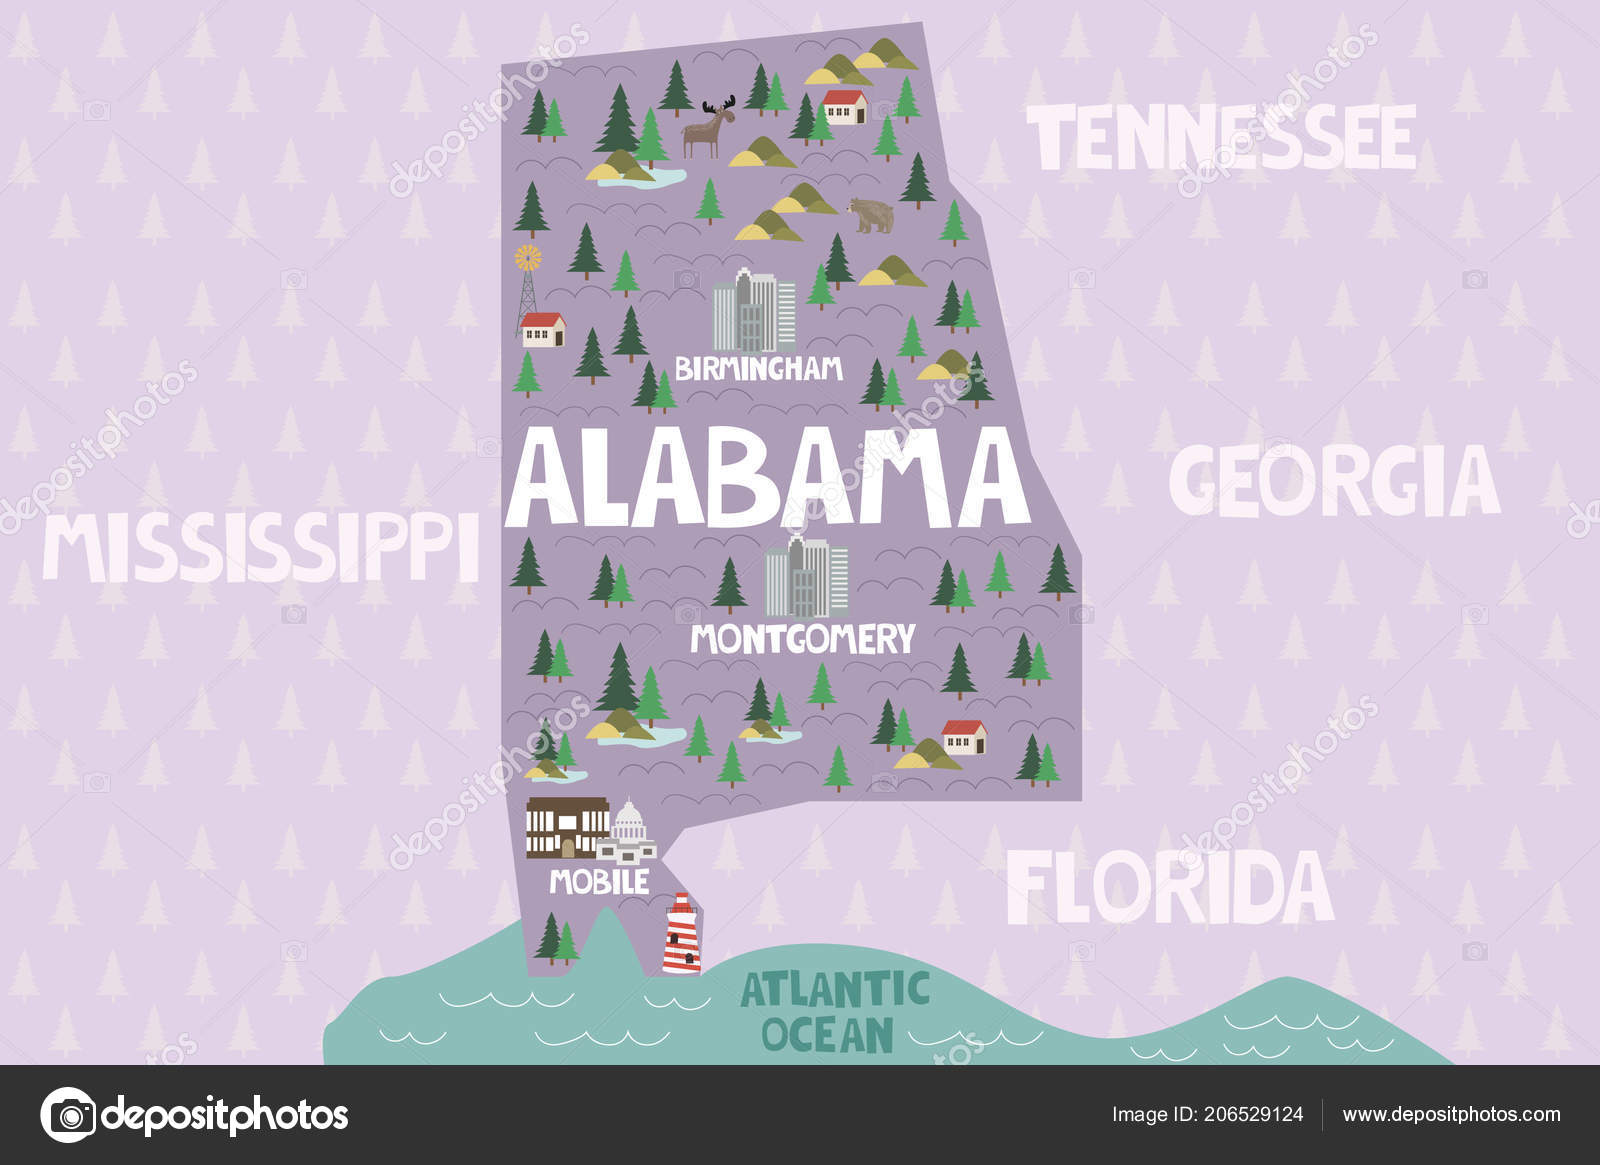 Alabama United States Map.Illustrated Map State Alabama United States Cities Landmarks